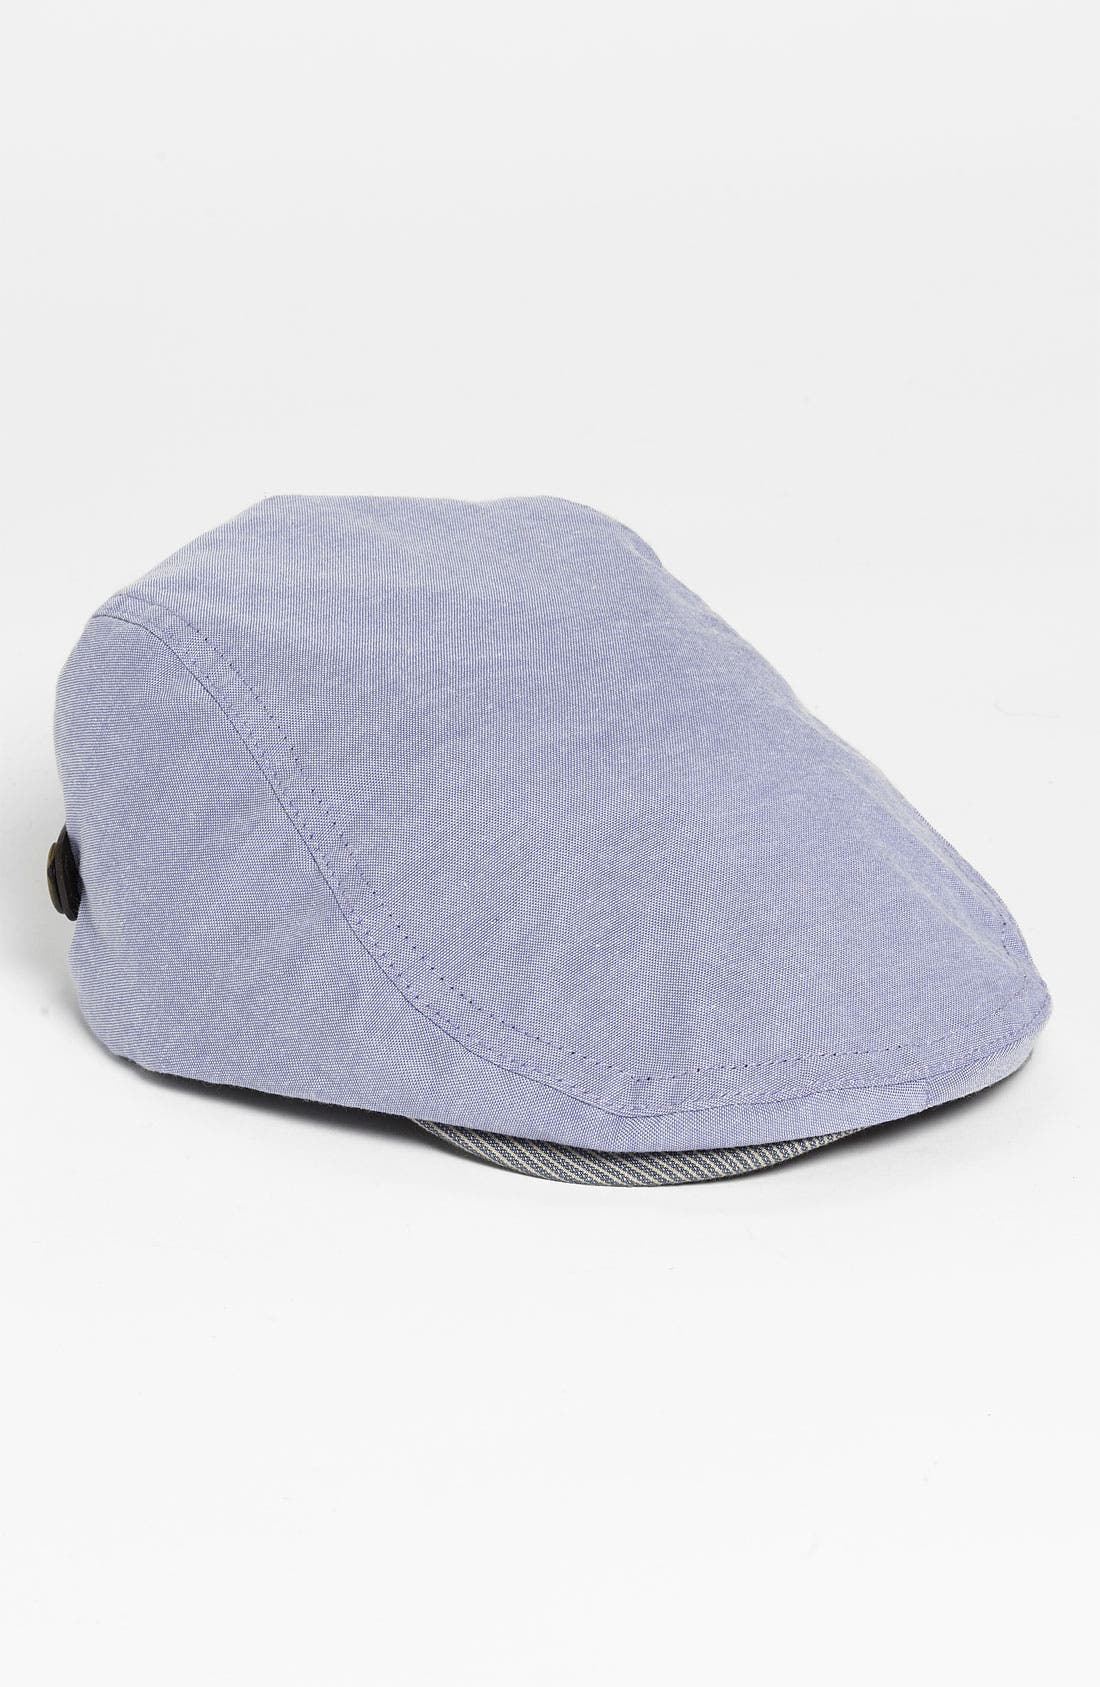 Alternate Image 1 Selected - Ted Baker London Driving Cap